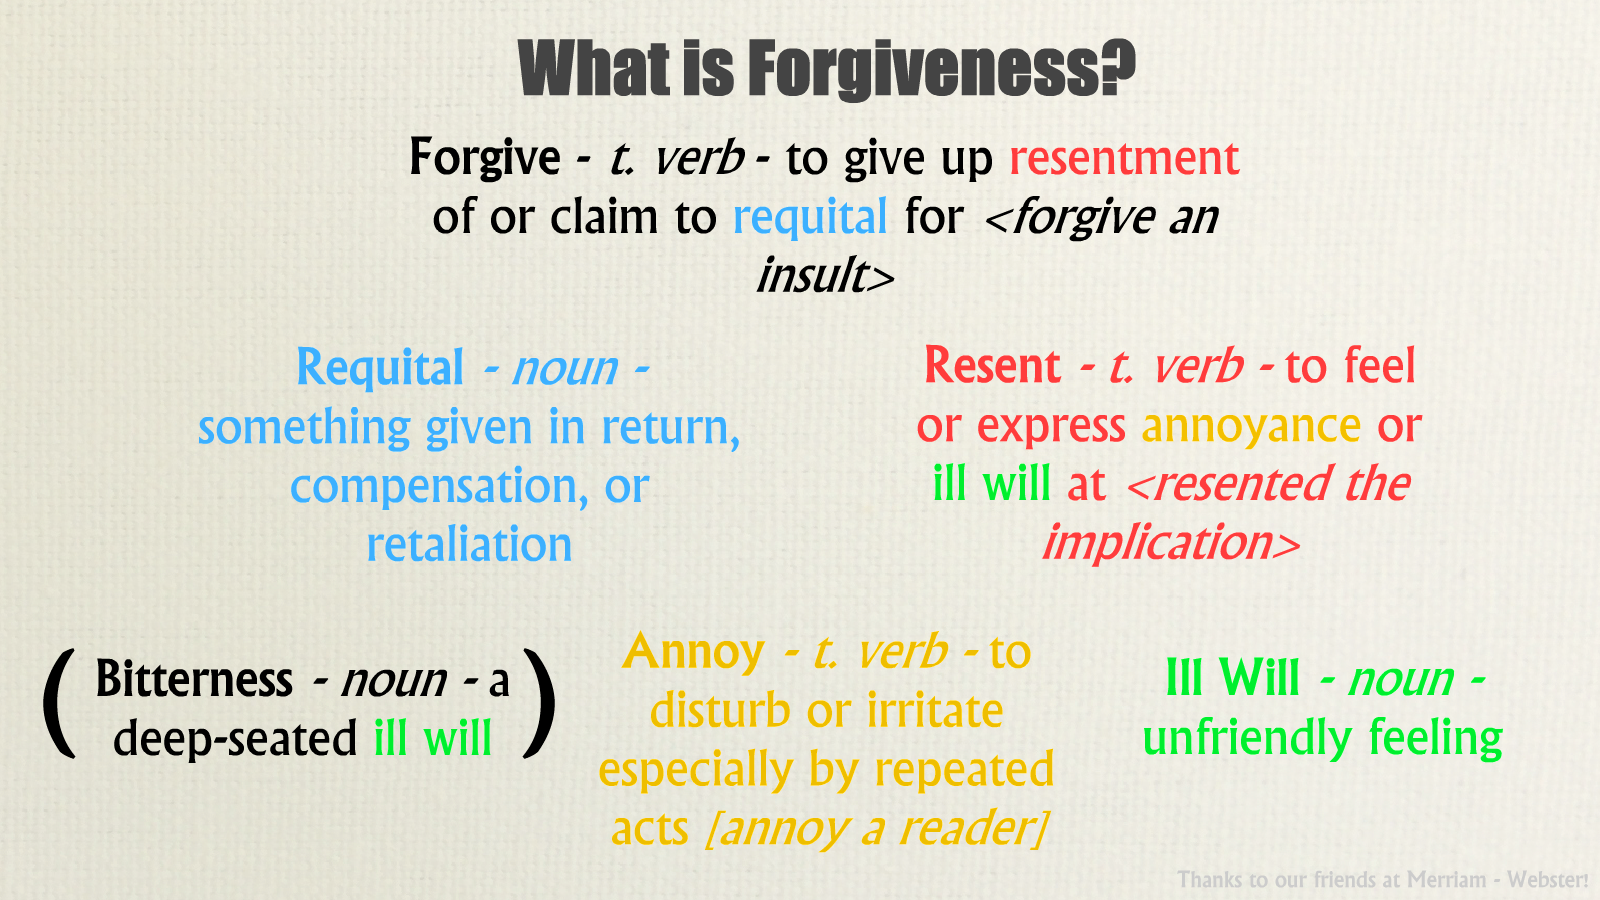 forgiveness definition essay Forgiveness is a very important thing i believe in because it doesn't feel good to hate or even just dislike someone strongly click here to read her essay.